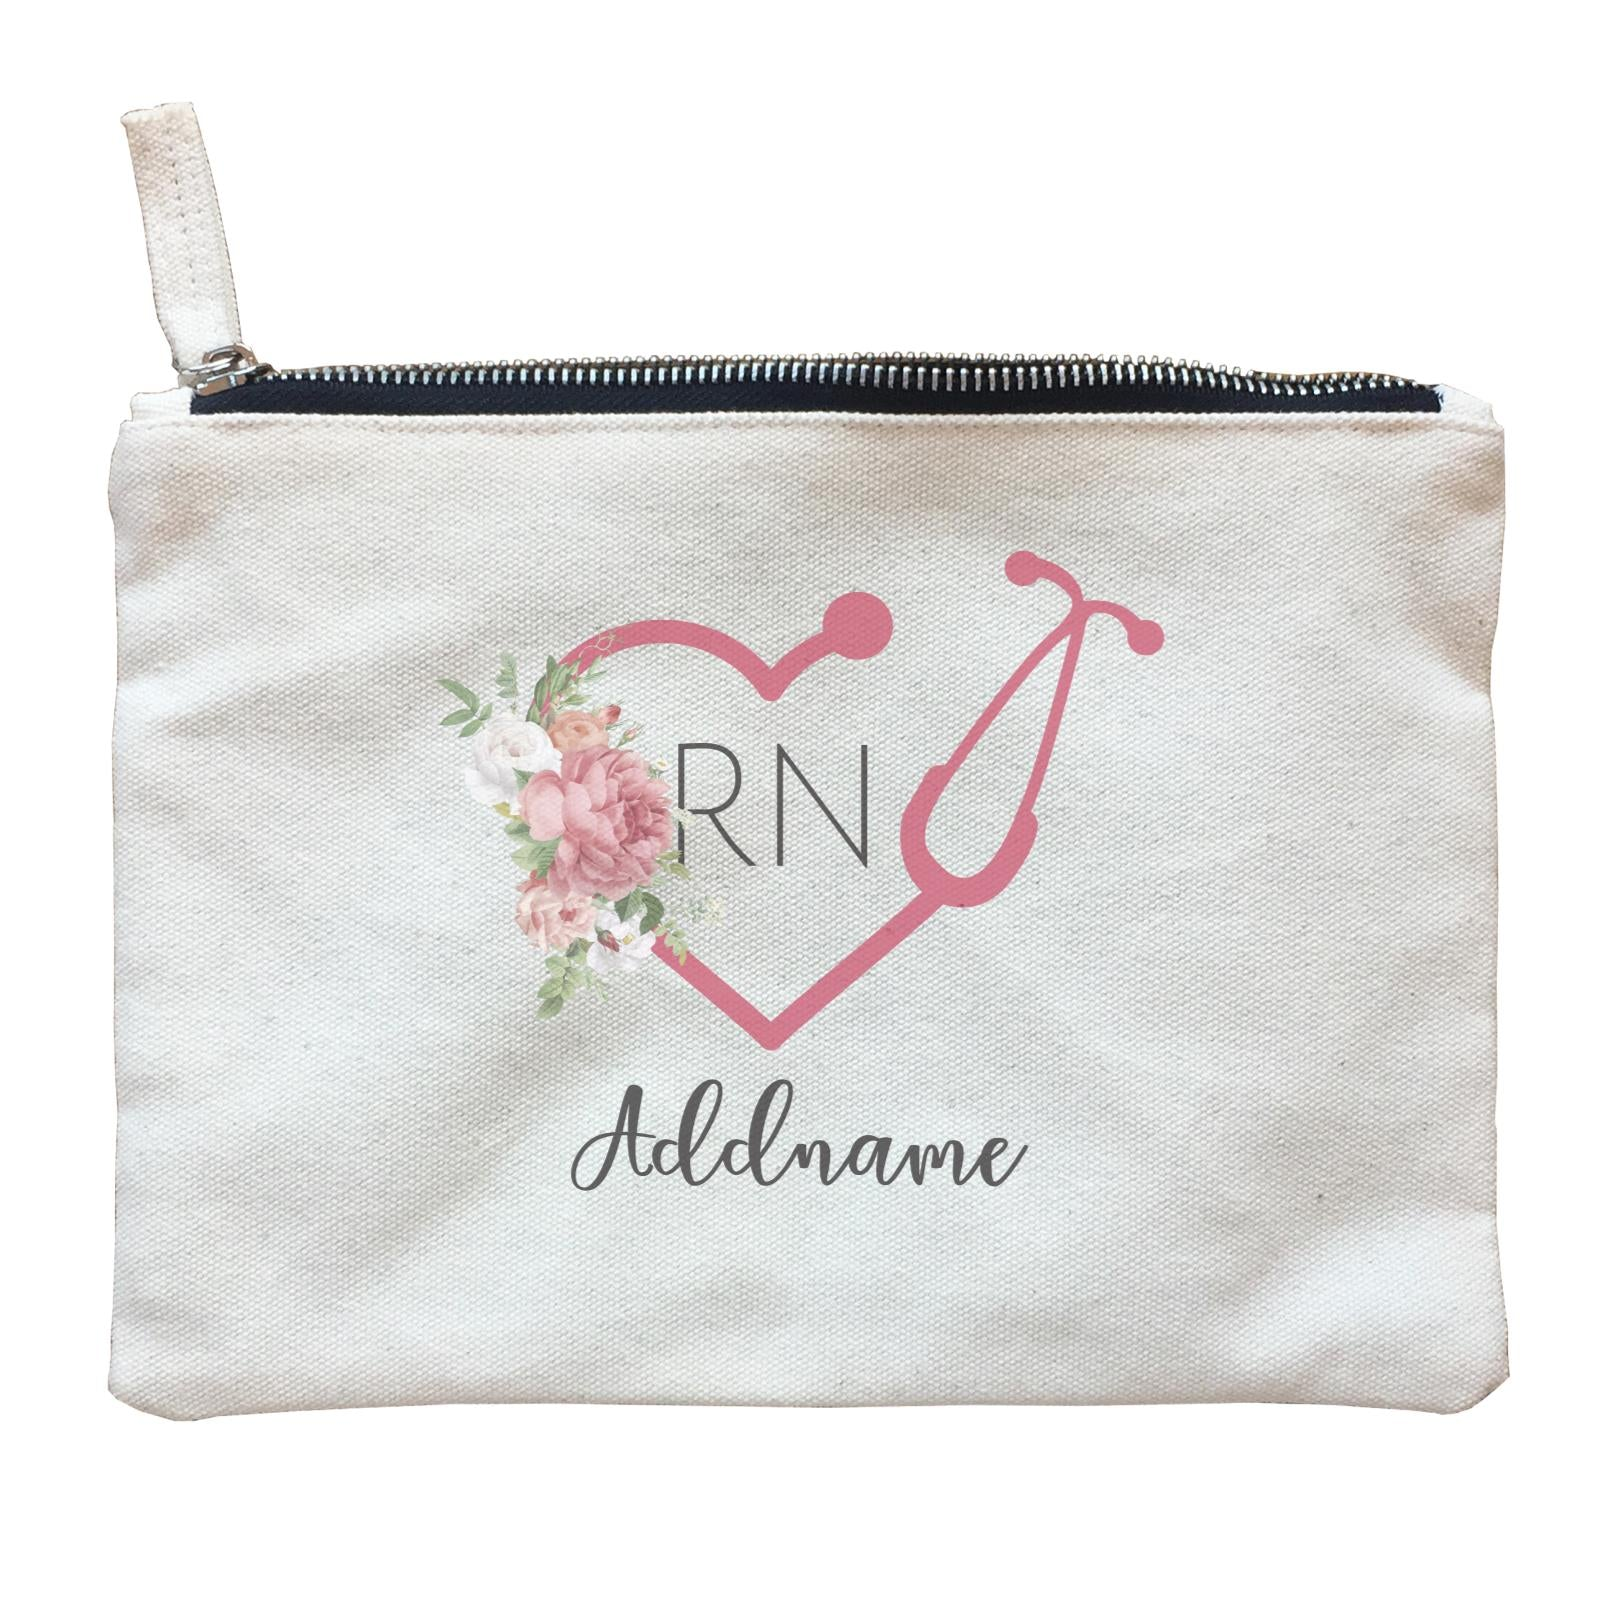 Nurse Quotes Stethoscope RN With Love Shape Addname Zipper Pouch